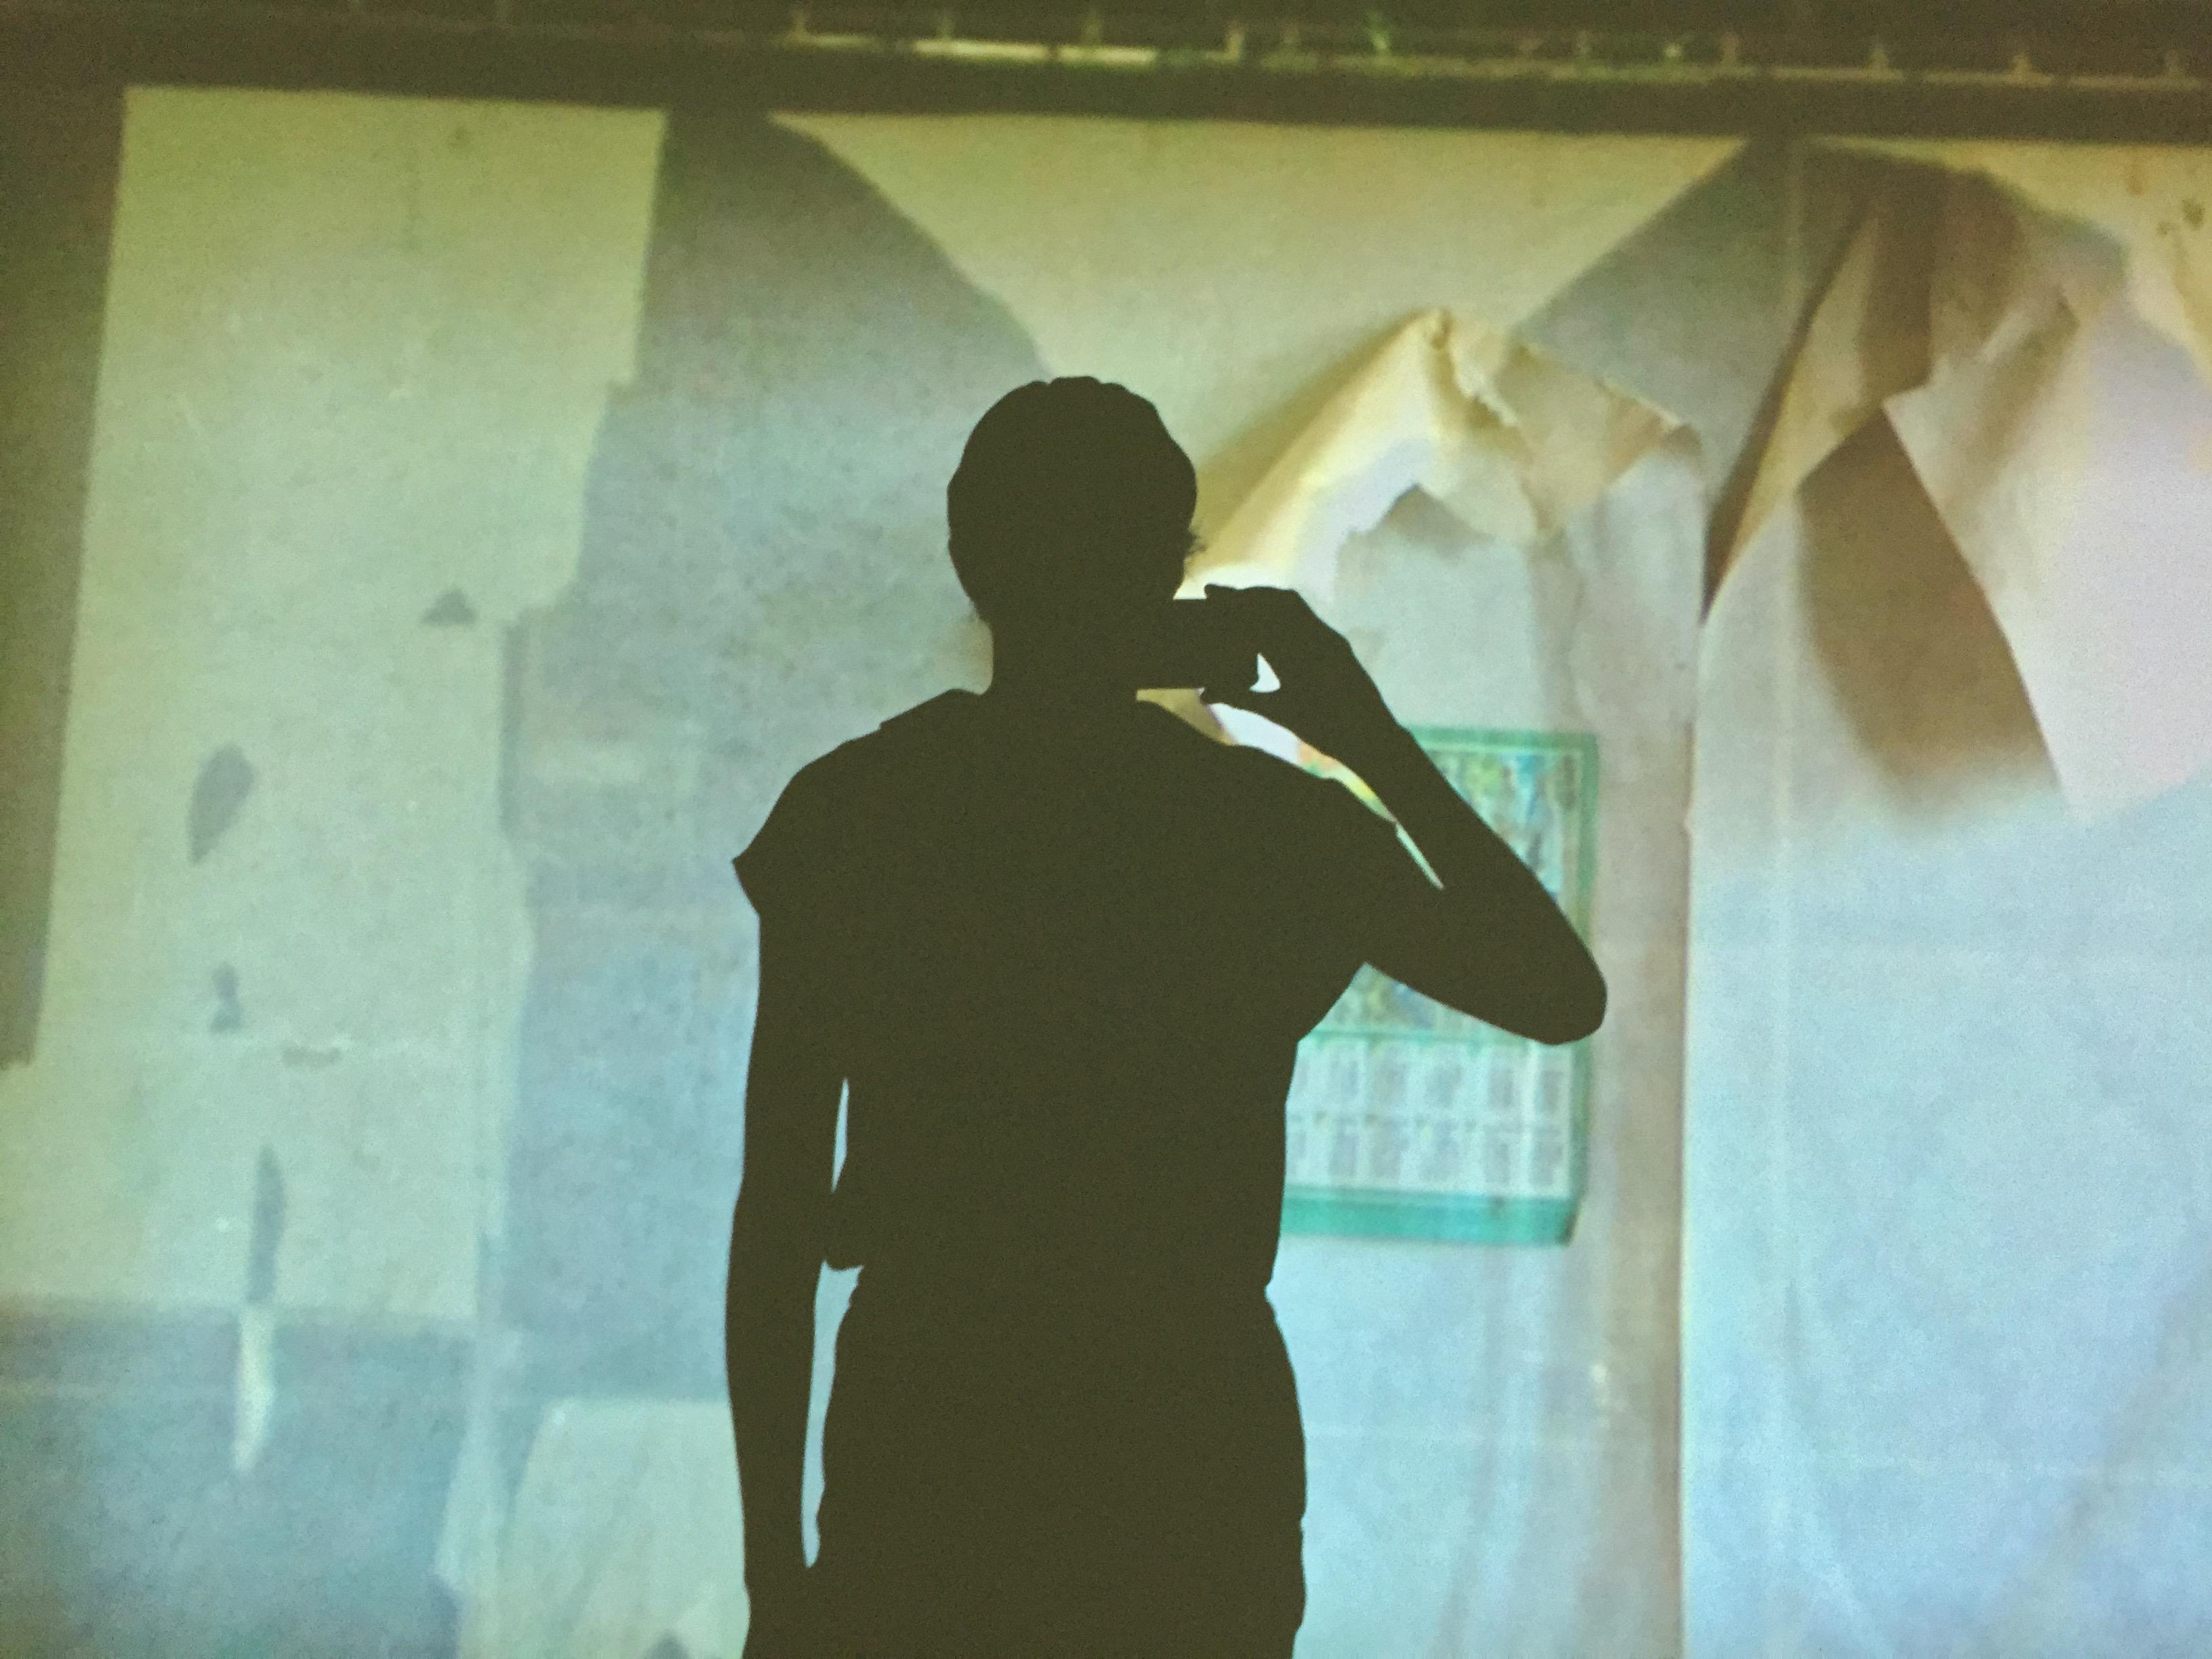 A silhouette of a person photographing a video projection on a wall. The video projection appears to be a room of peeling wallpaper.